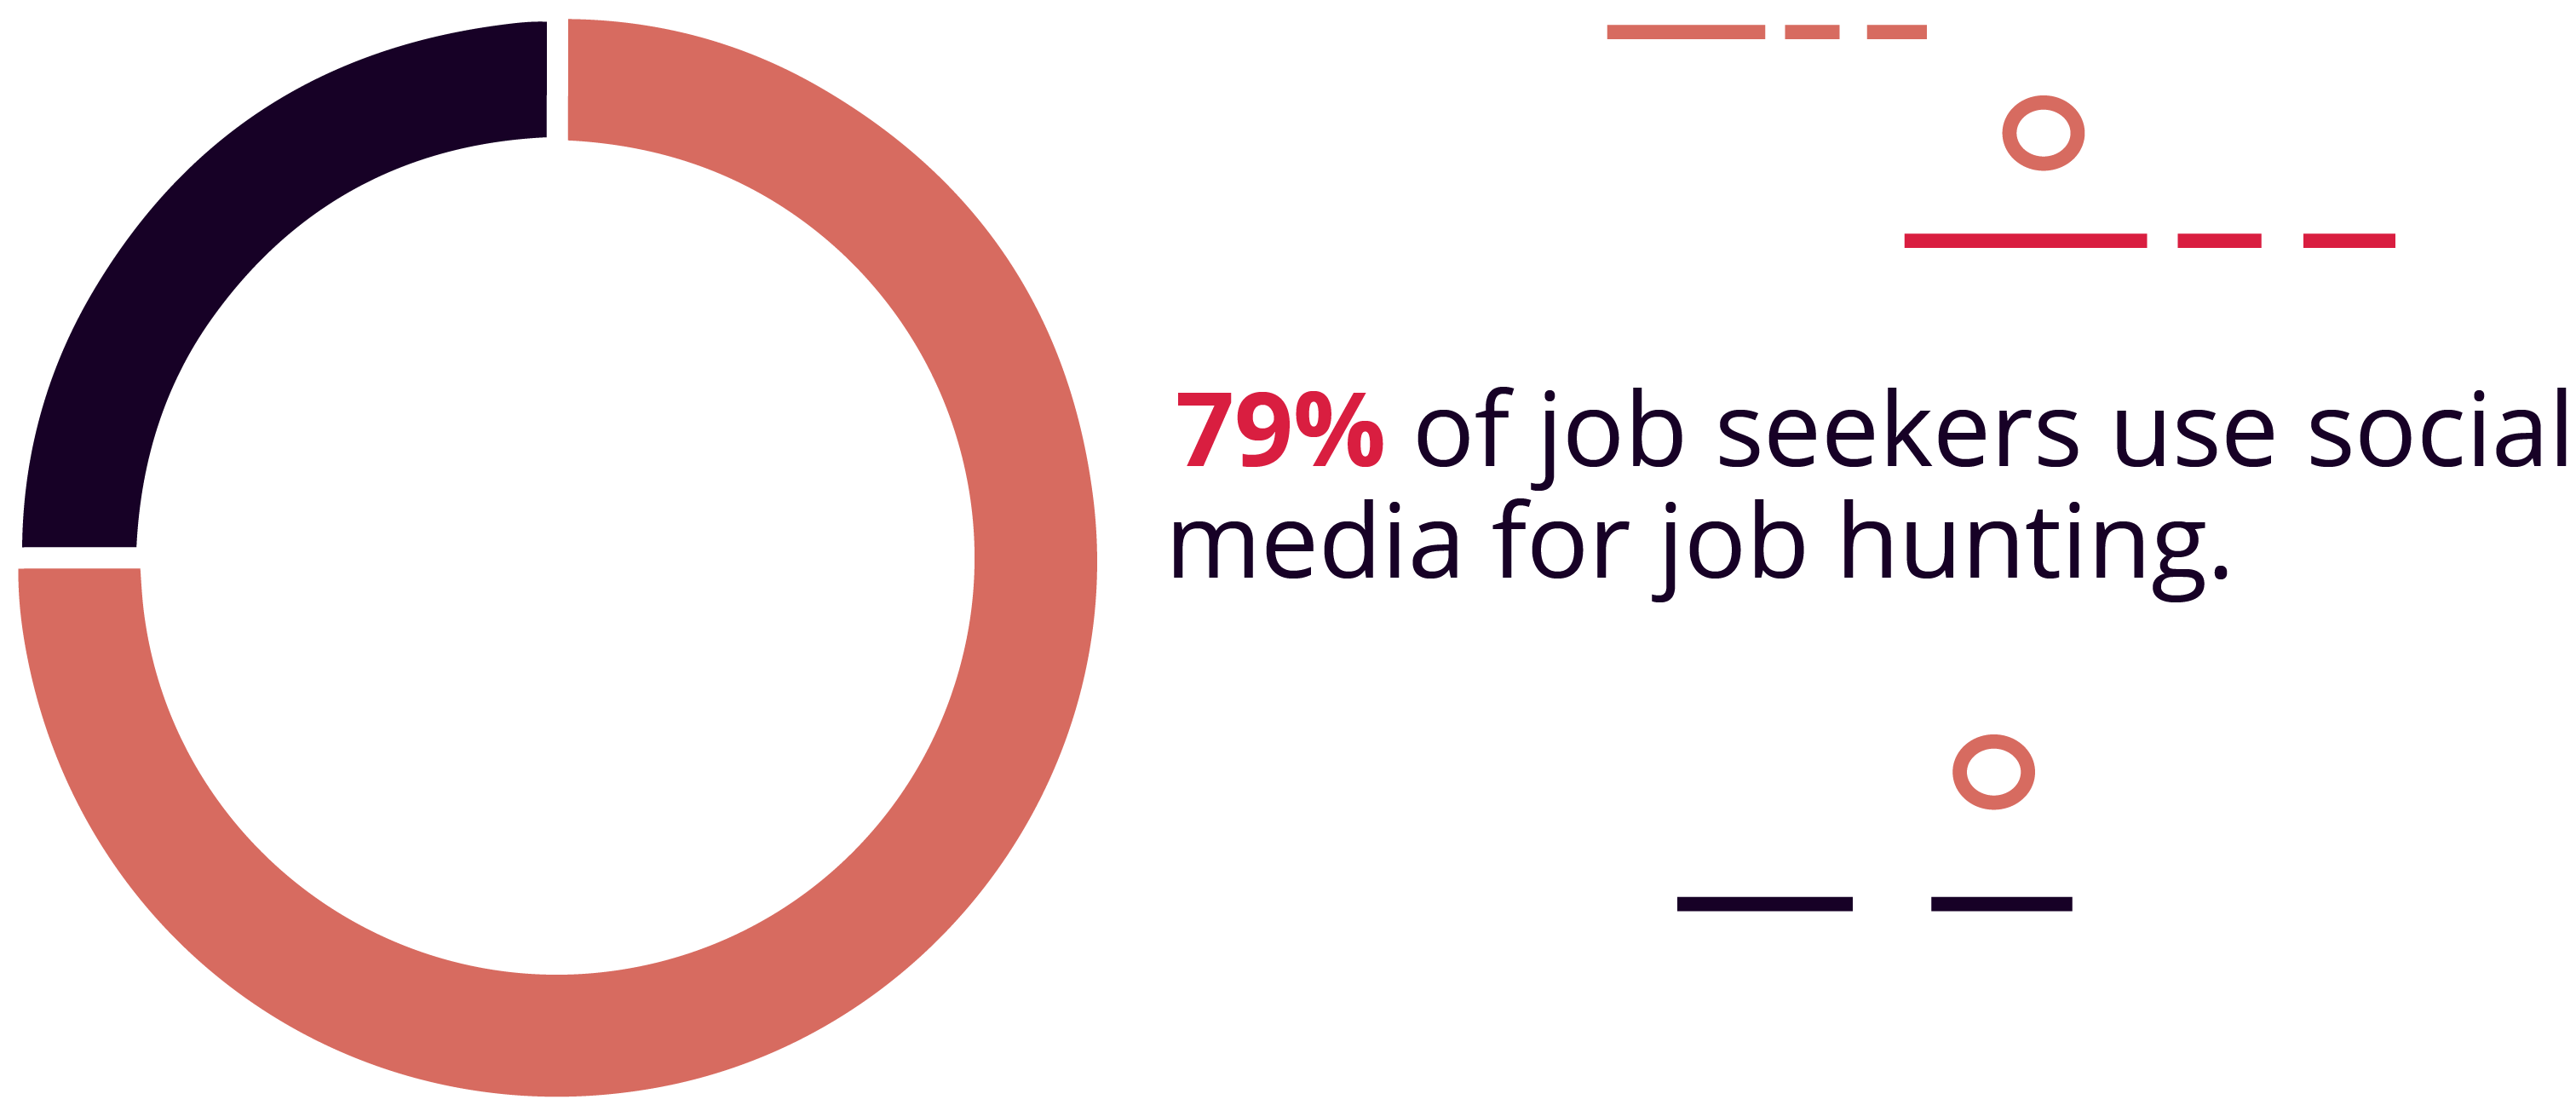 79% of job seekers use social media to find jobs